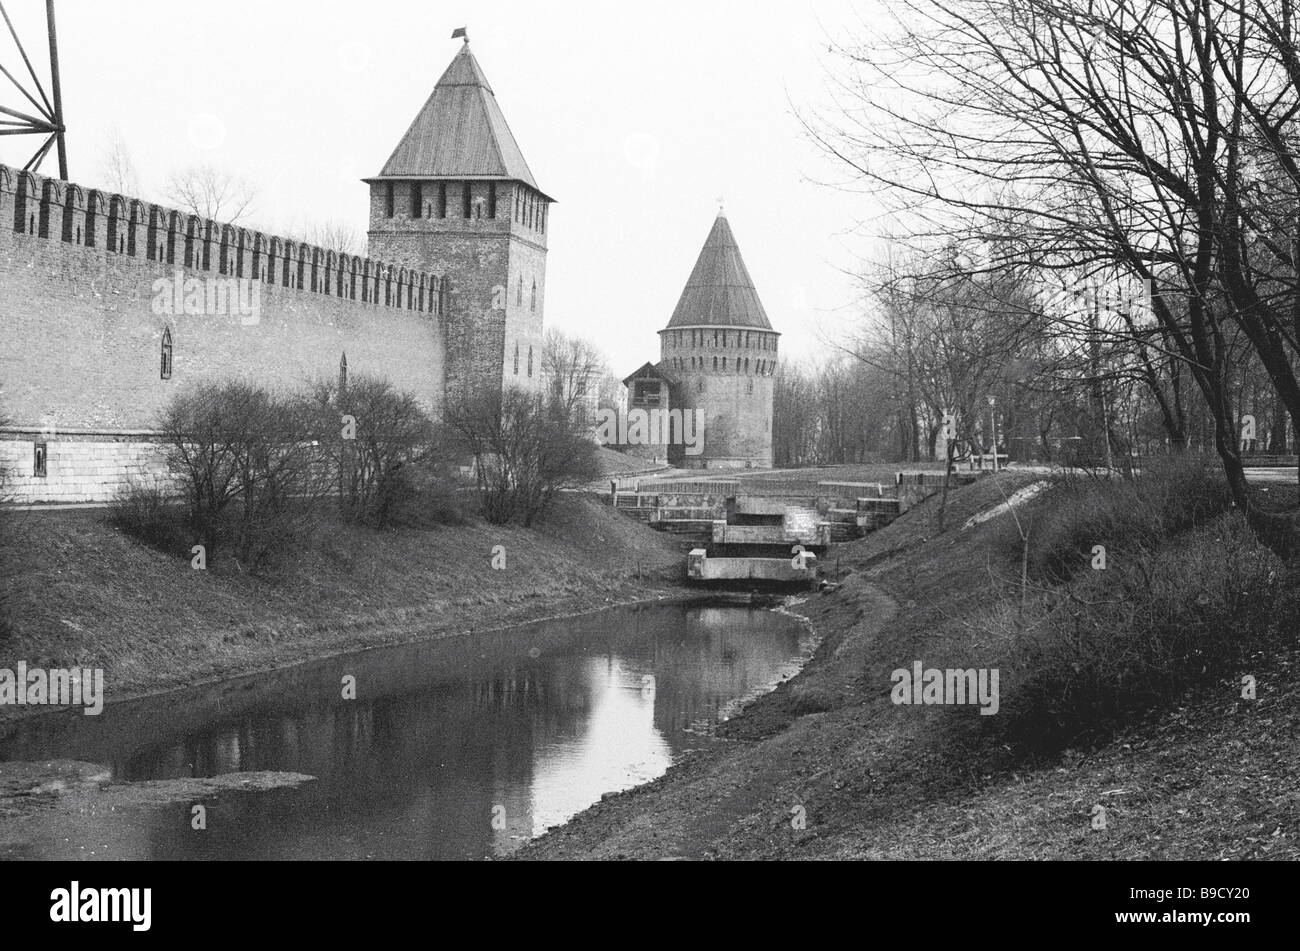 A part of the Smolensk Kremlin fortress wall 16 17 century with Kopytenskaya and Bubleiskaya towers - Stock Image